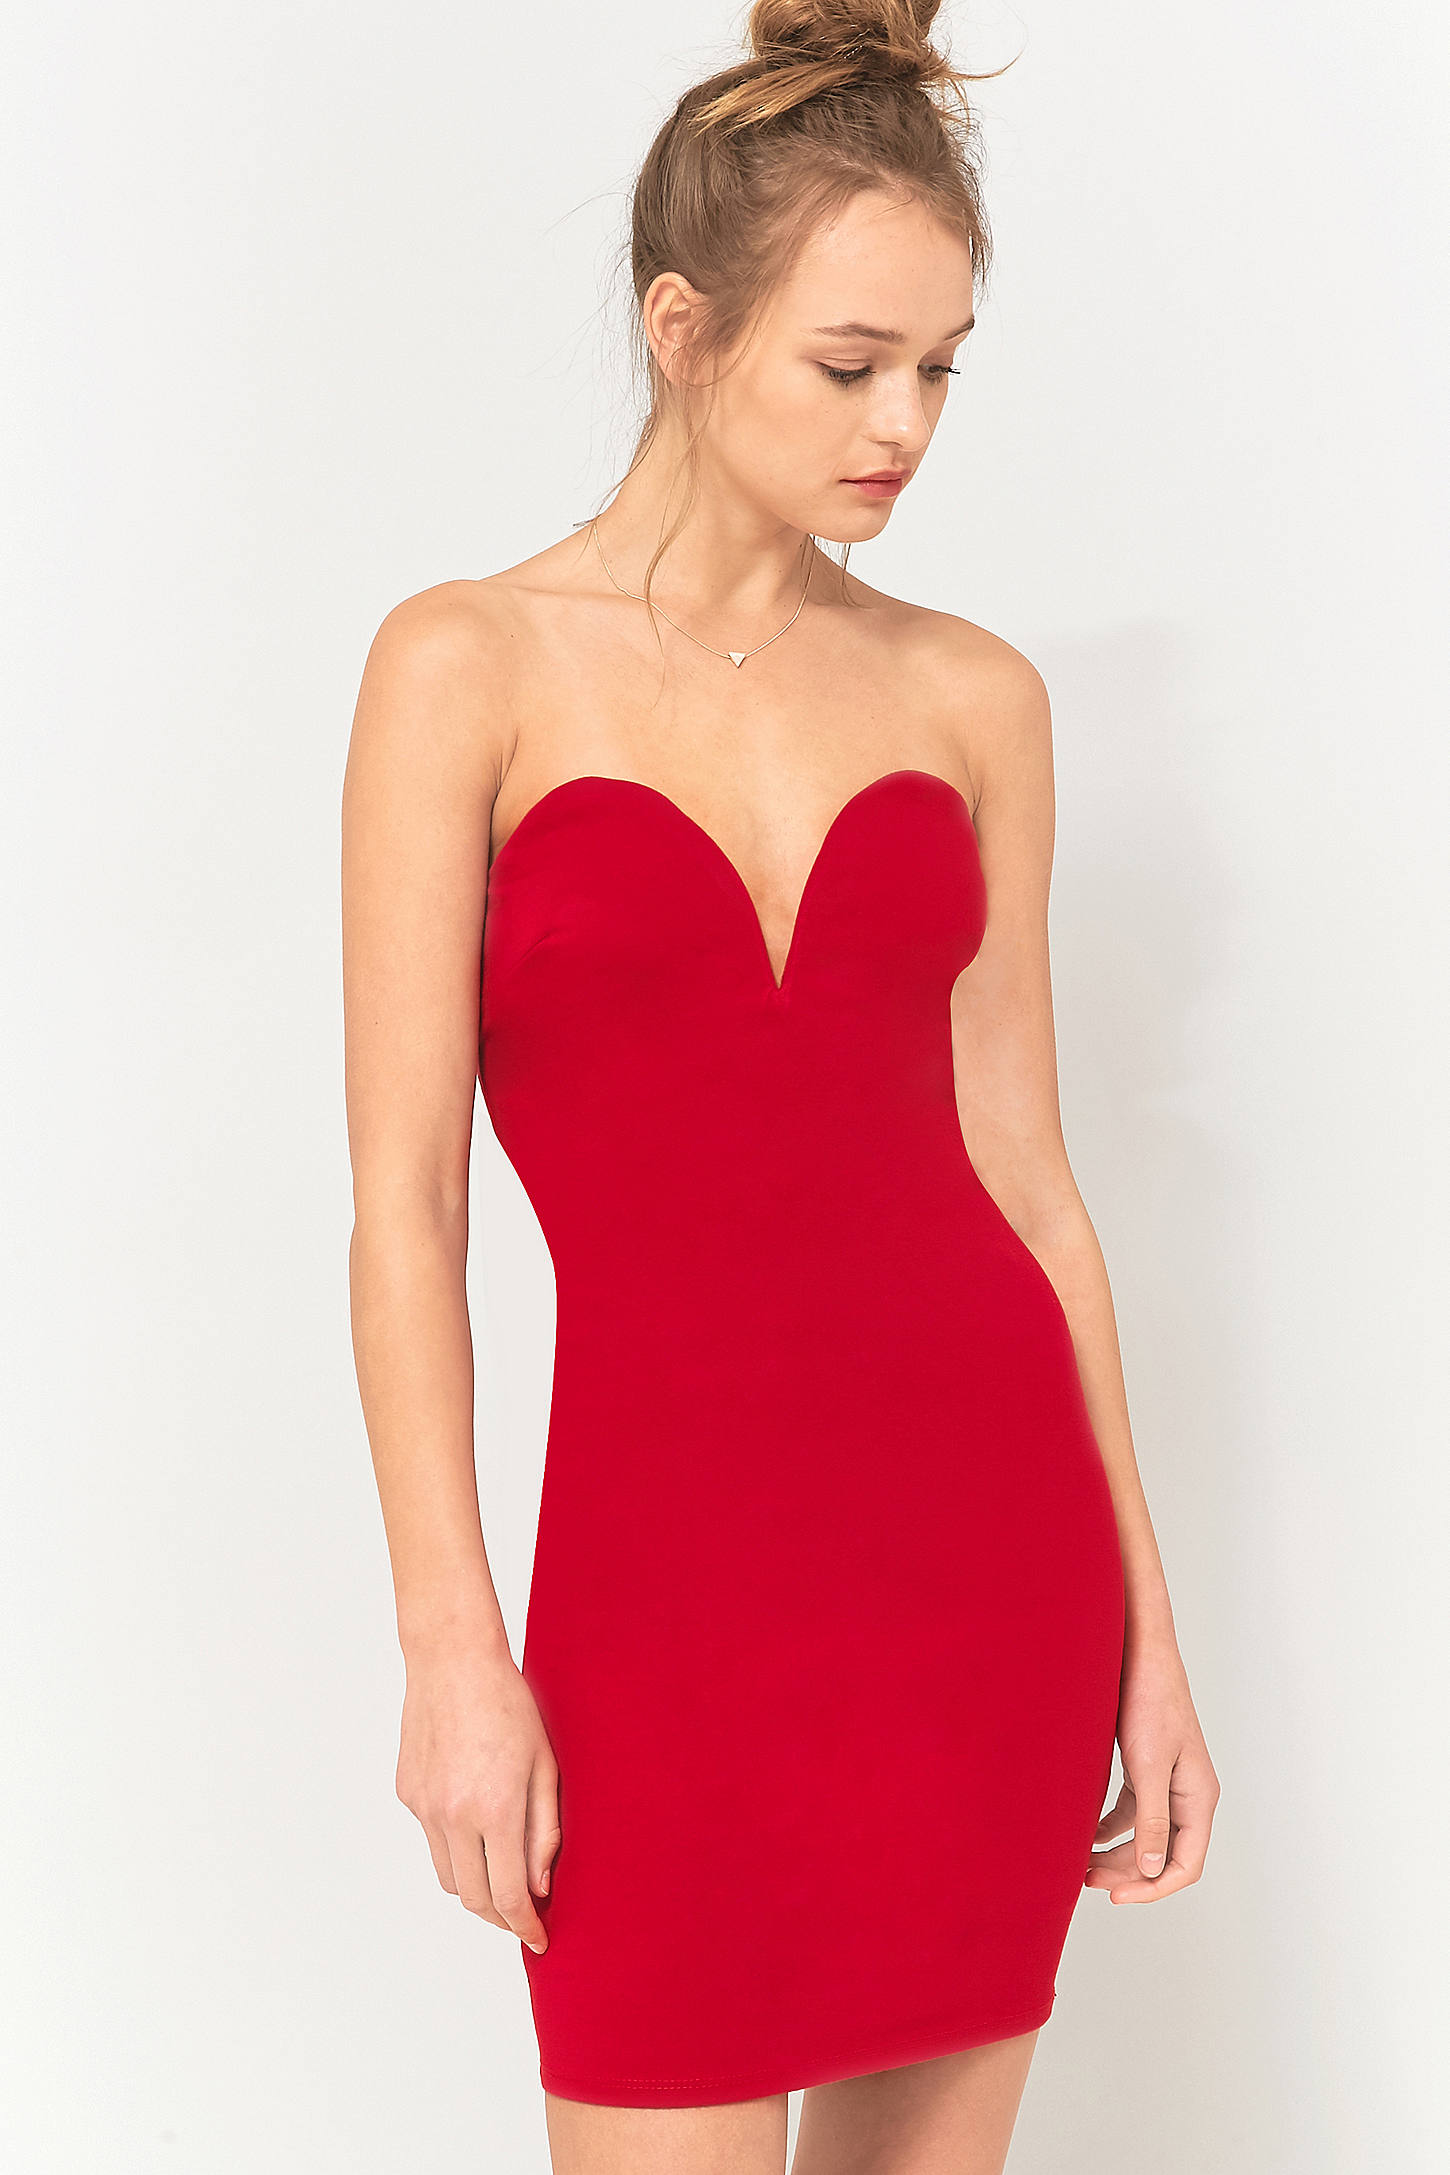 Sparkle & Fade Sweetheart Neckline Strapless Dress | Urban Outfitters